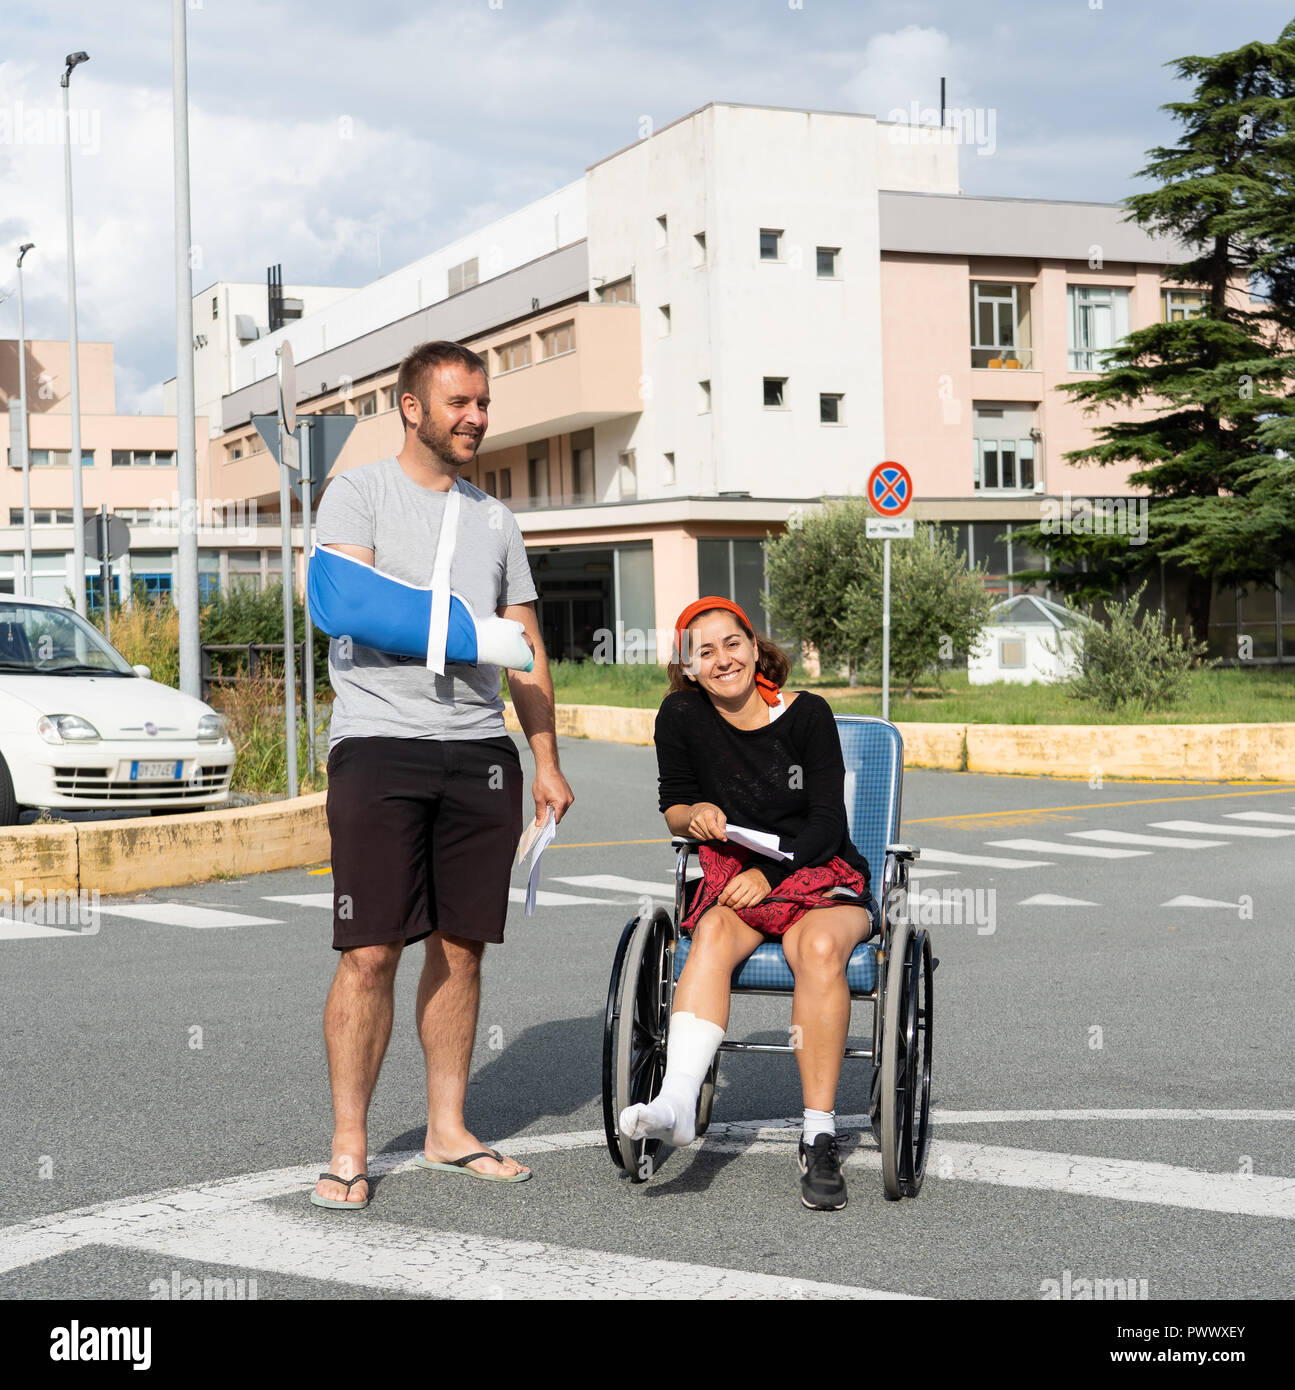 Young injured couple with broken foot and arm coming out of the hospital happy that their insurance paid the medical bills in travel health insurance  - Stock Image